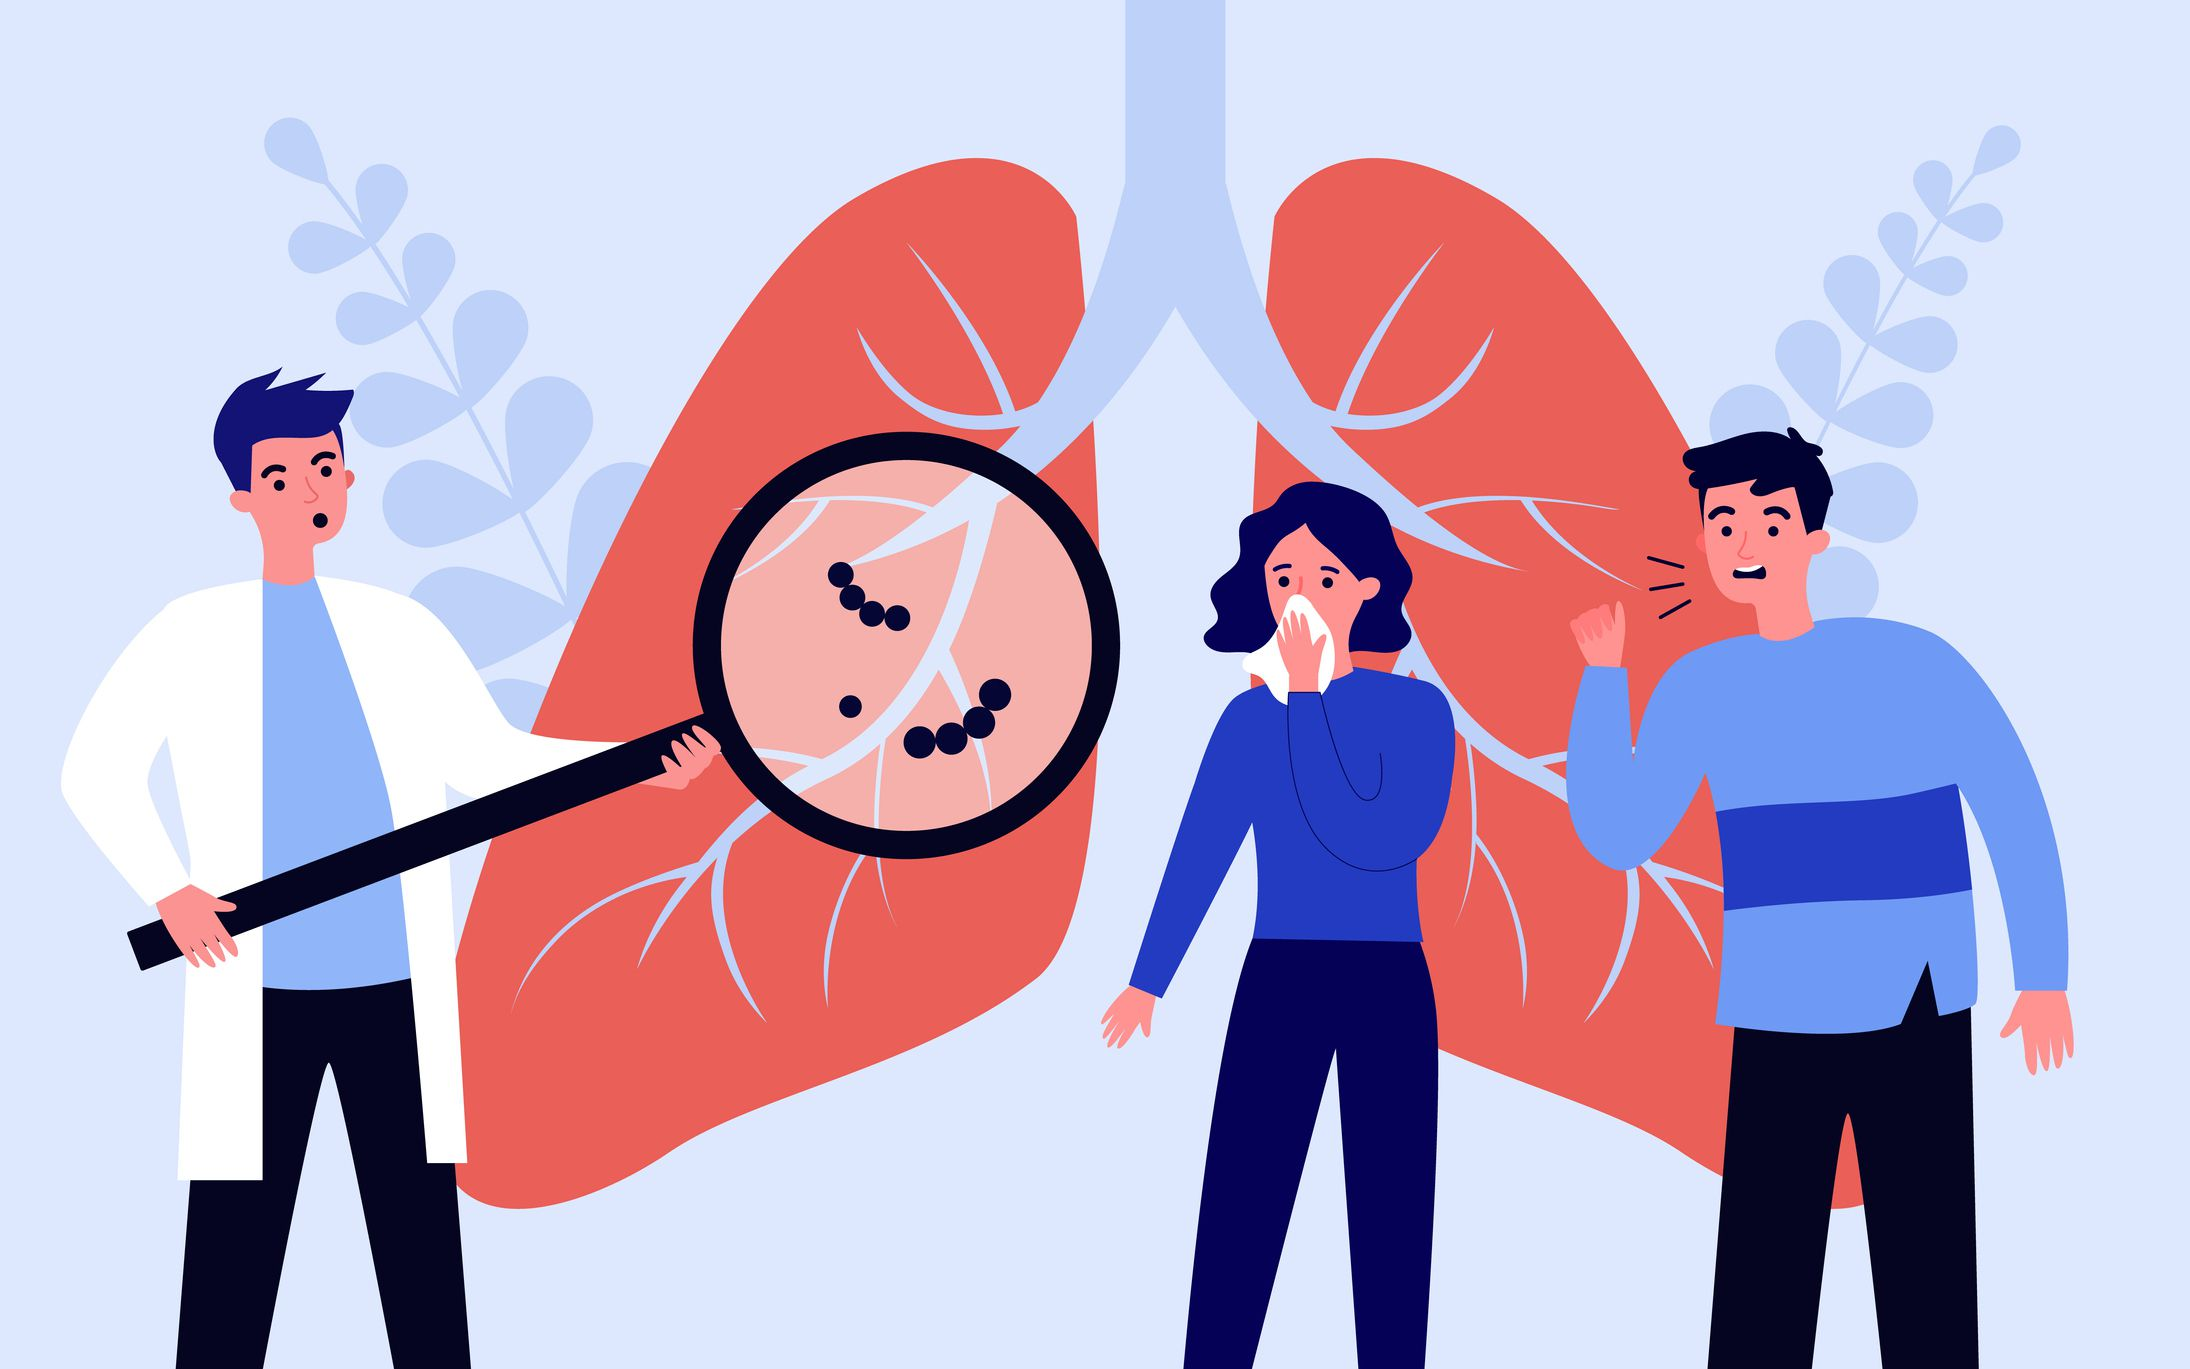 An illustration of a doctor holding a magnifying glass over a pair of lungs with two people looking at it—a woman with a tissue over her mouth and a man who is coughing.